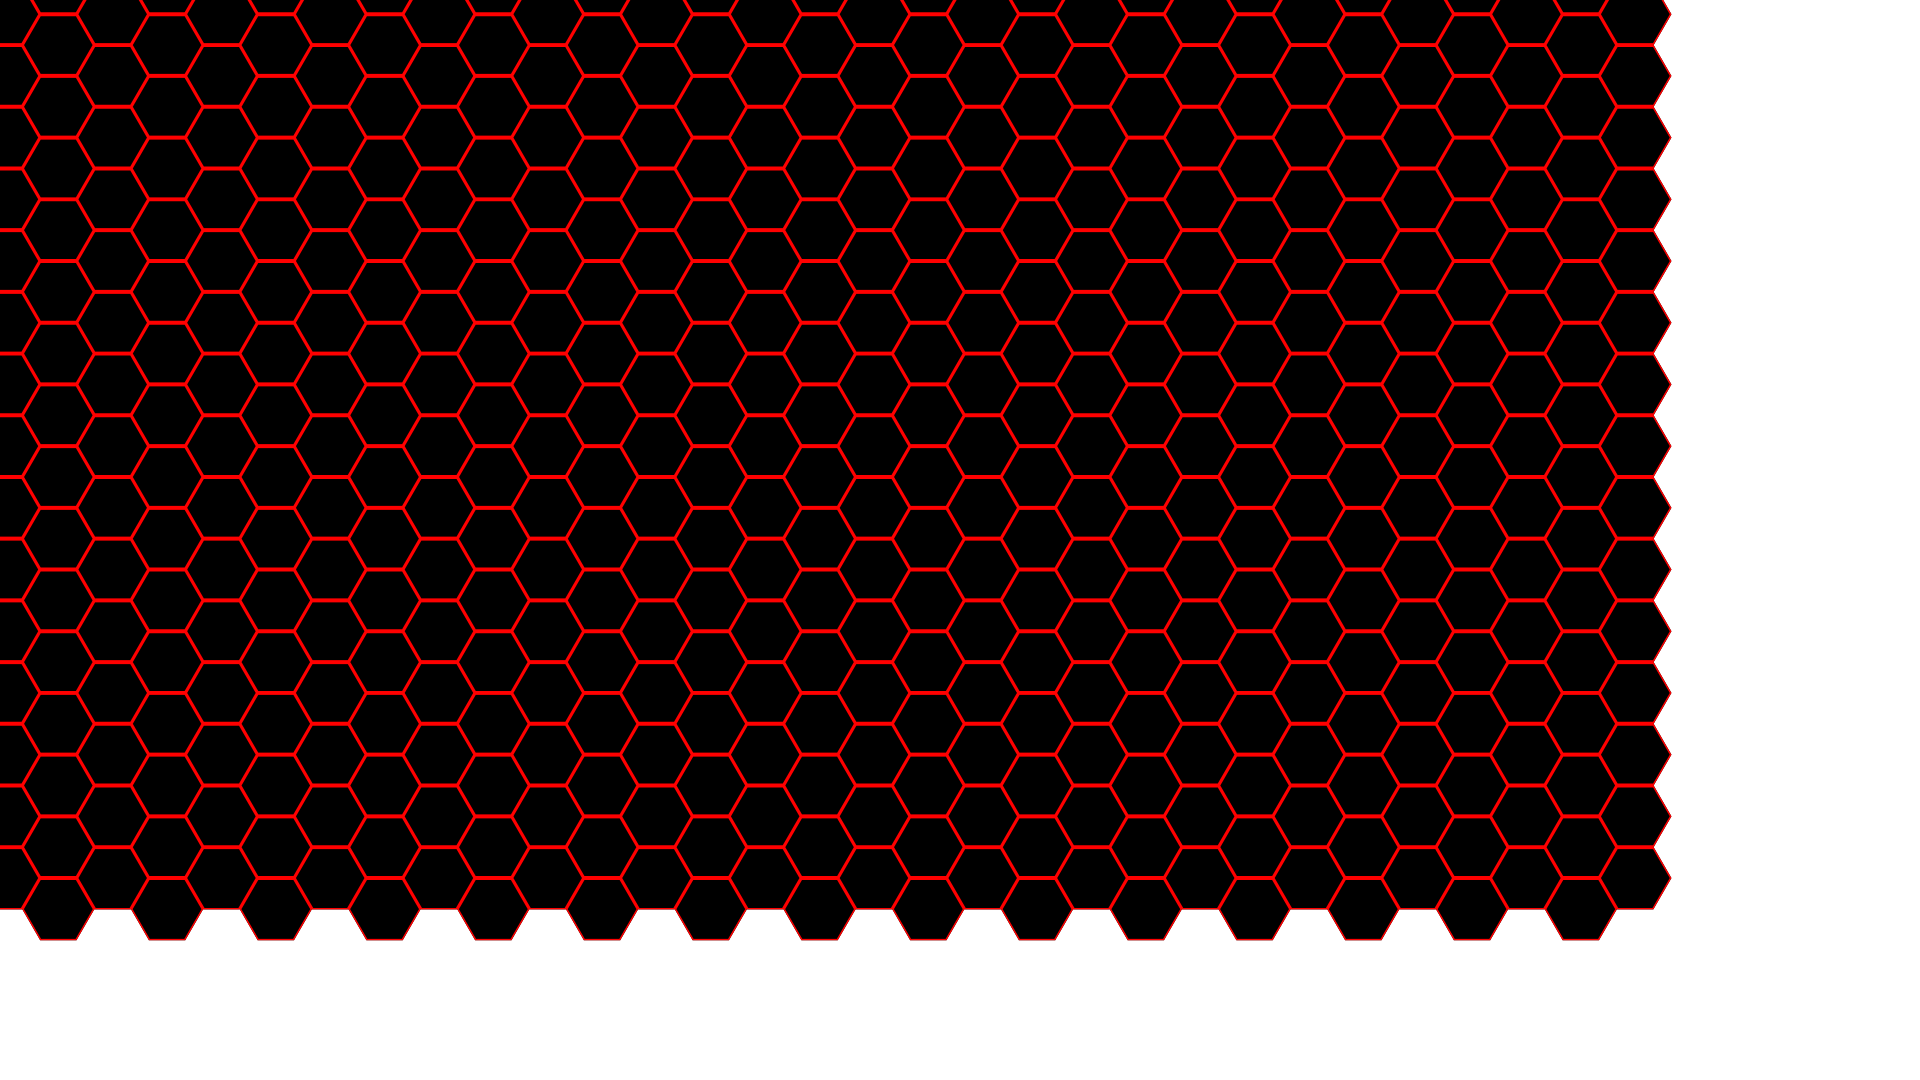 red honeycomb png